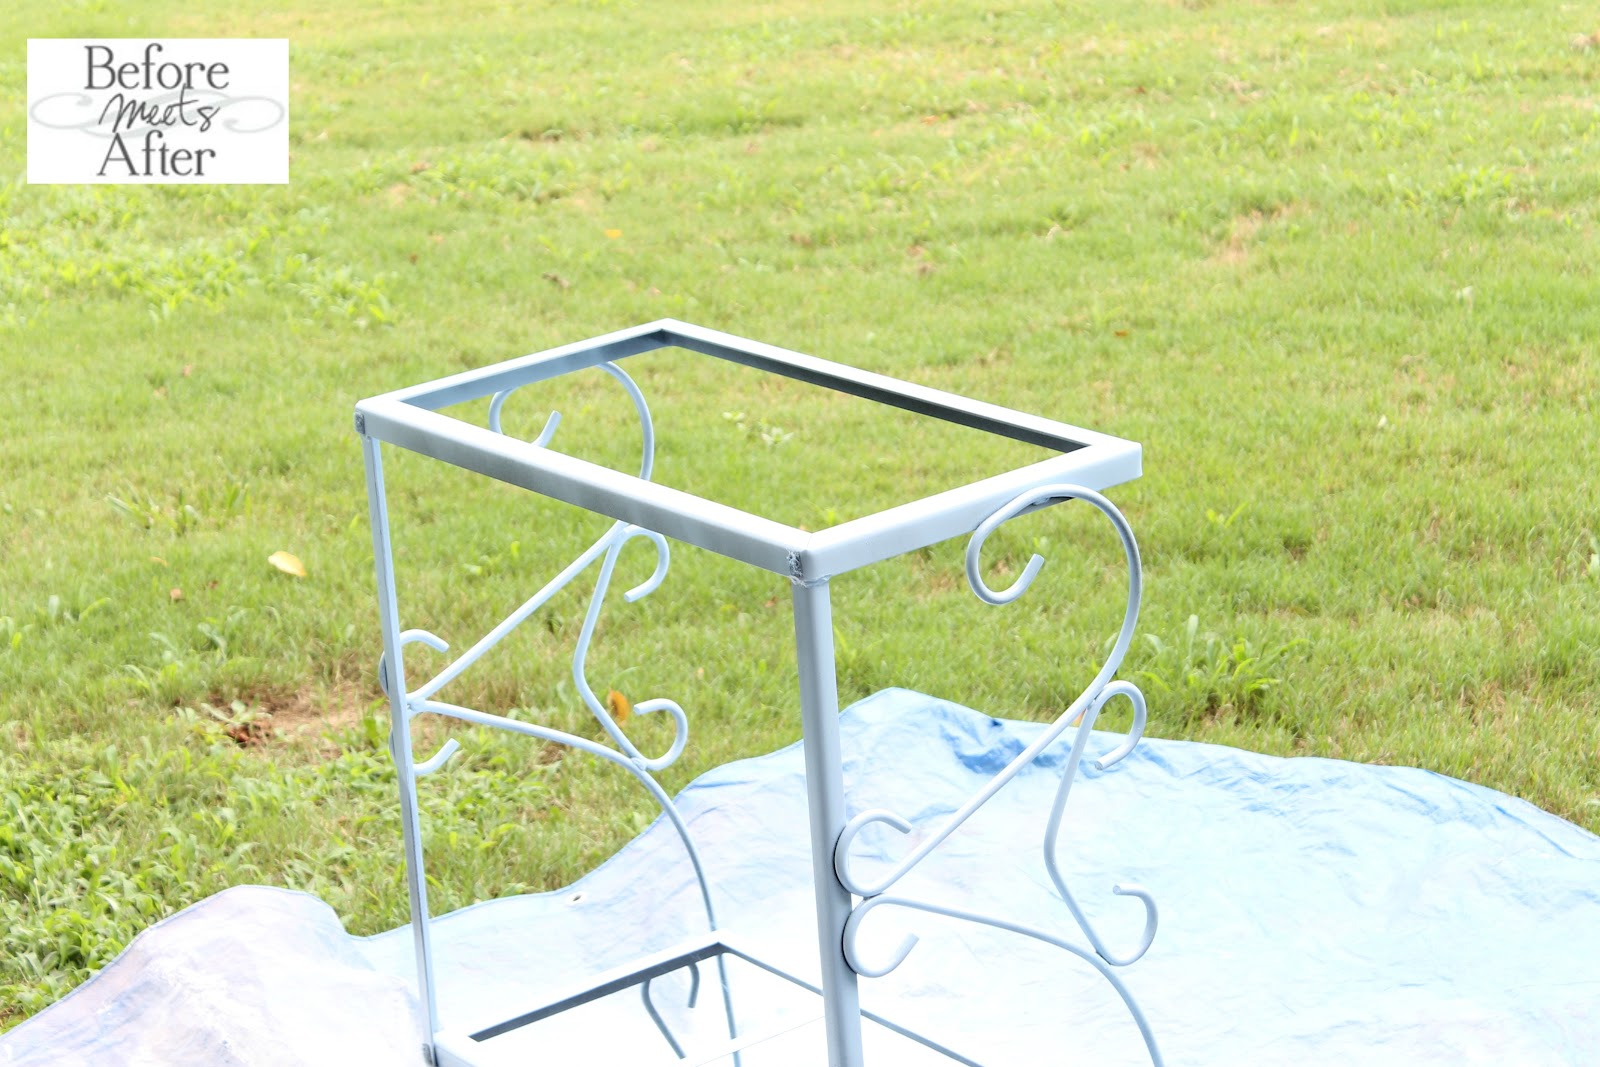 Before Meets After: Metal outdoor table top